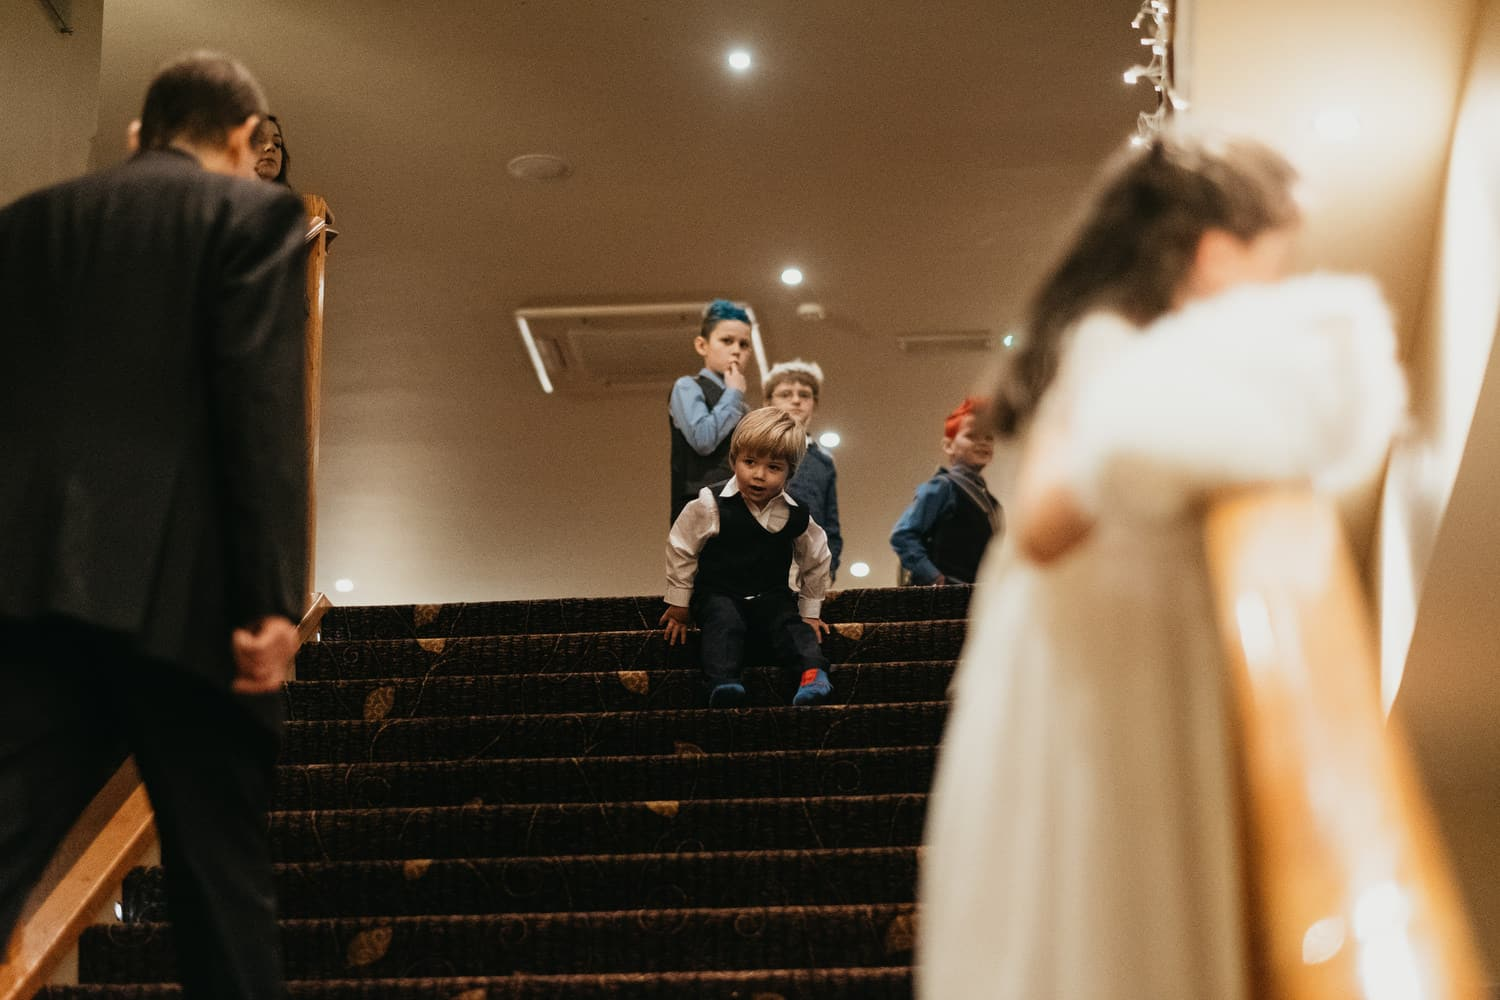 kids play on the stairs at wedding reception